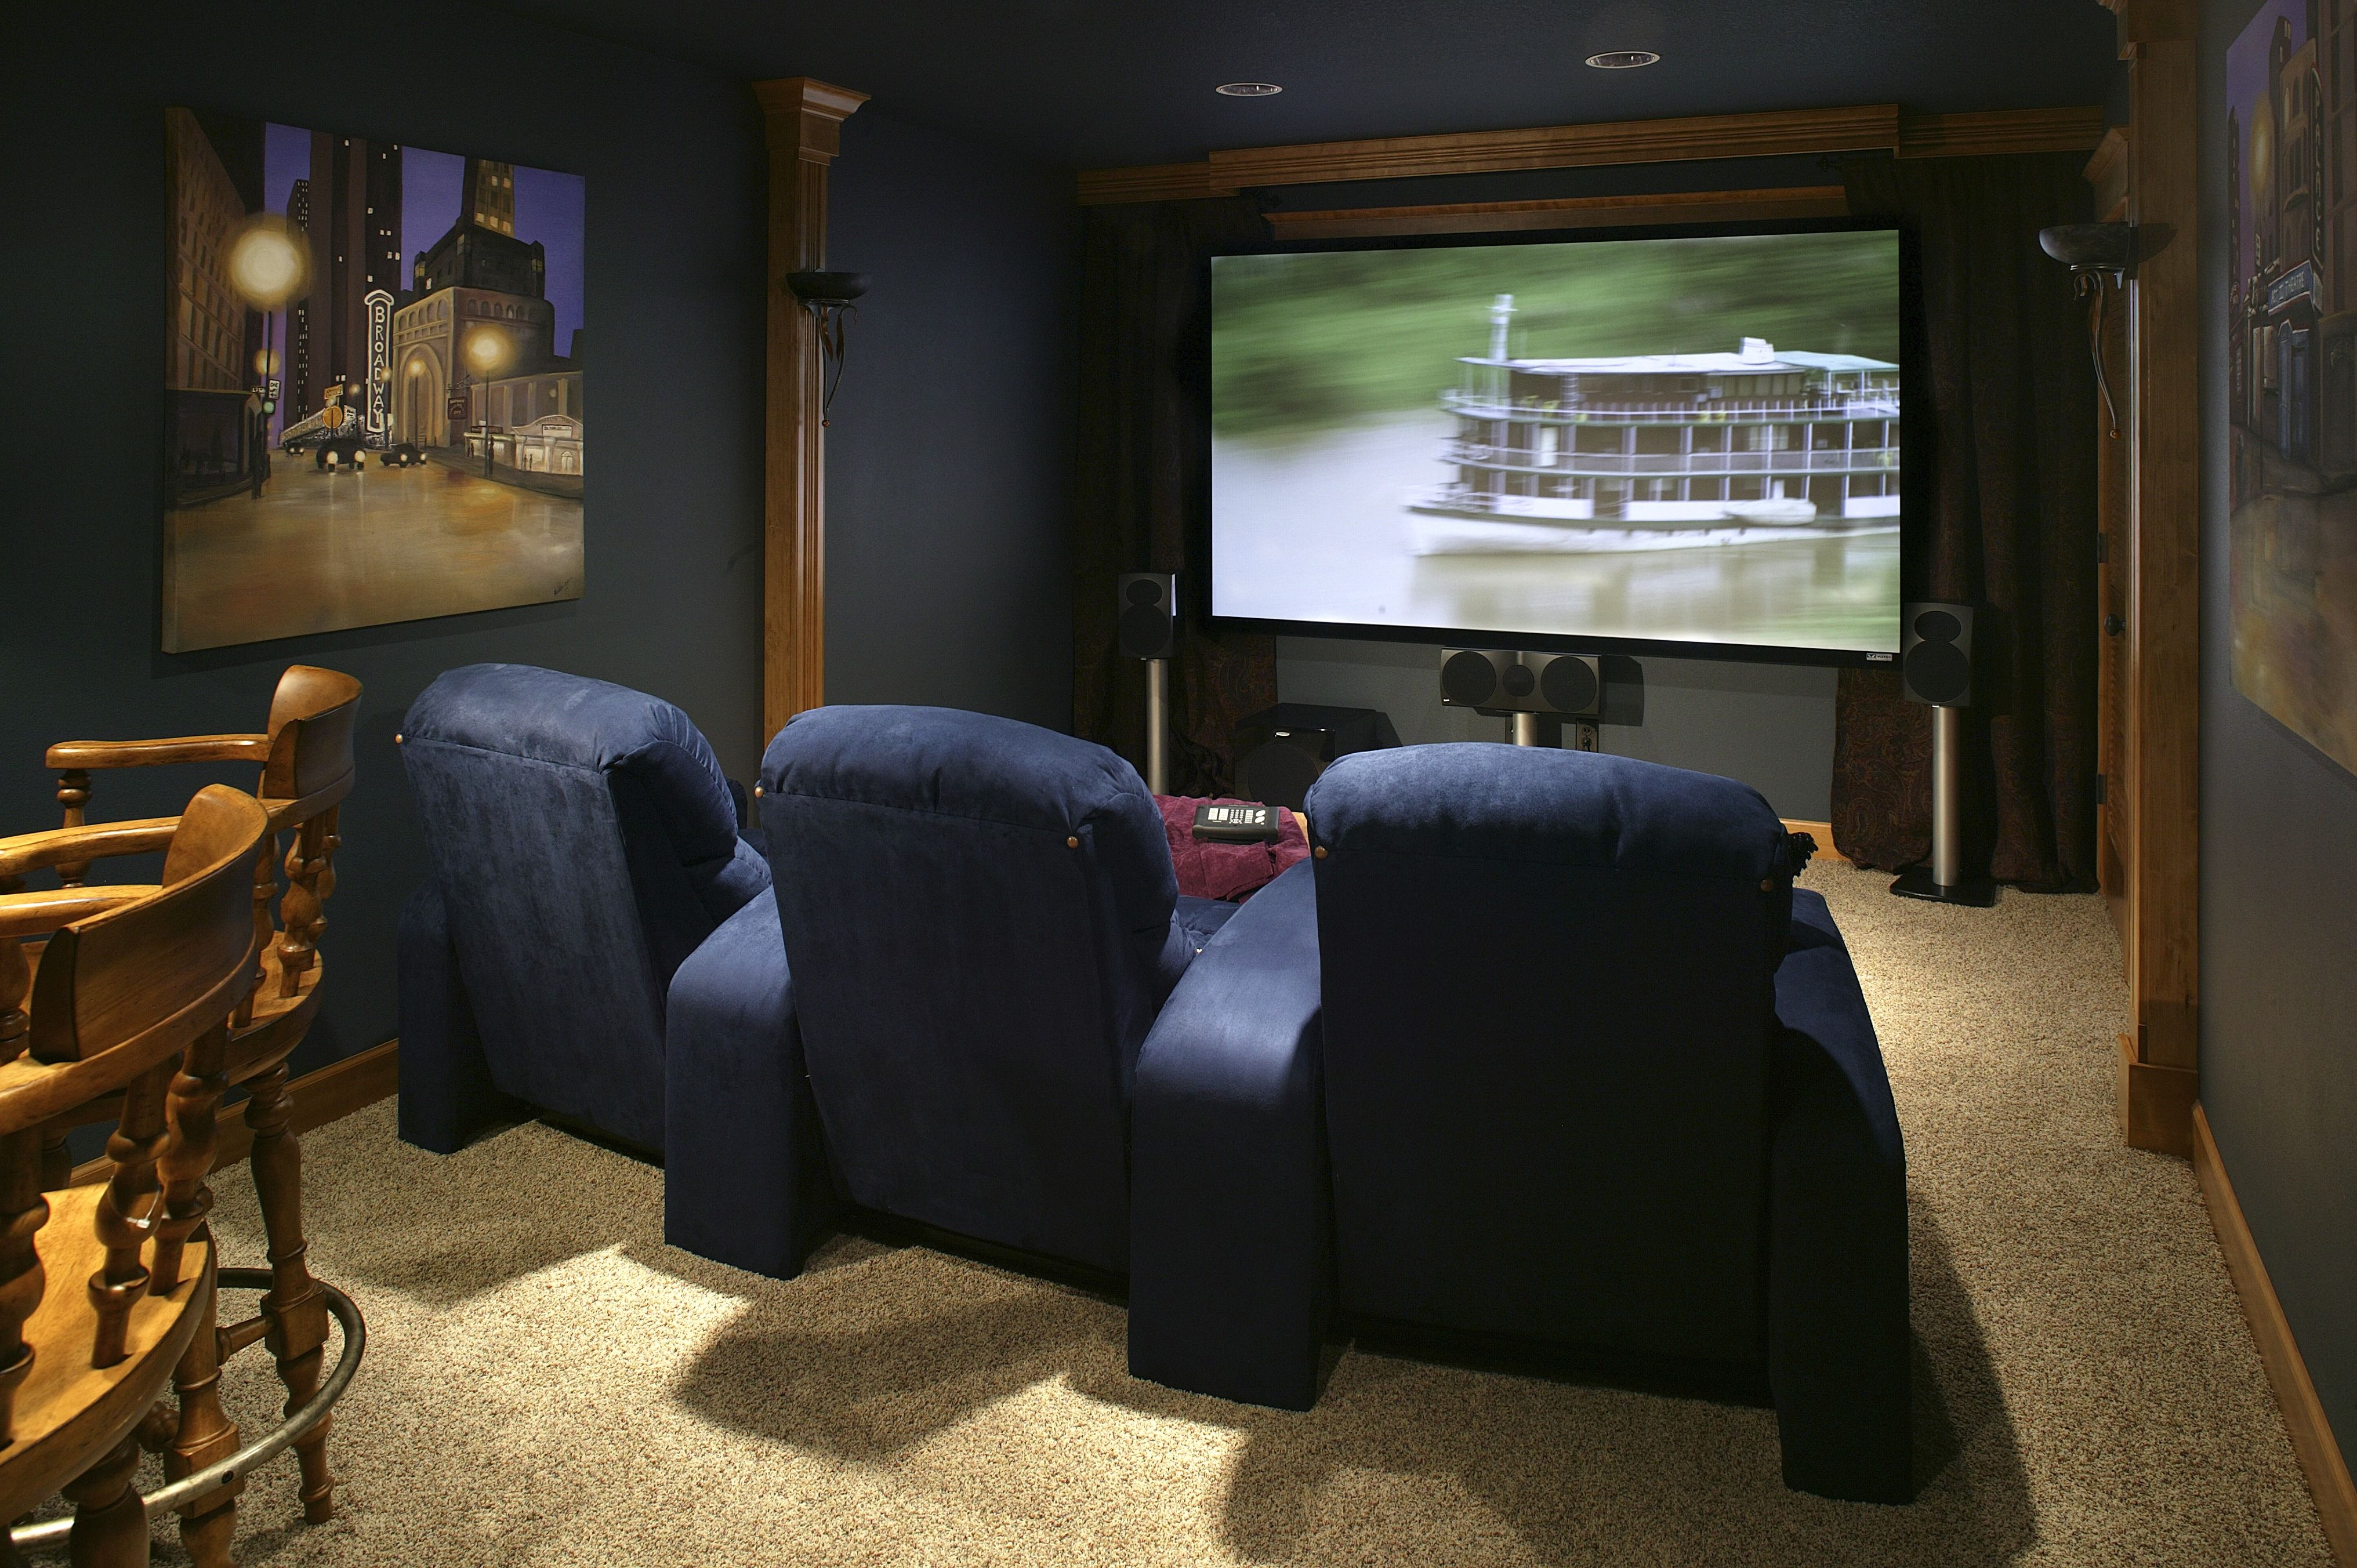 Small Home Theater Featuring A Full Bar And Three Navy Movie Seats Carpeted Floors City Wall Art Completes This Remodeled